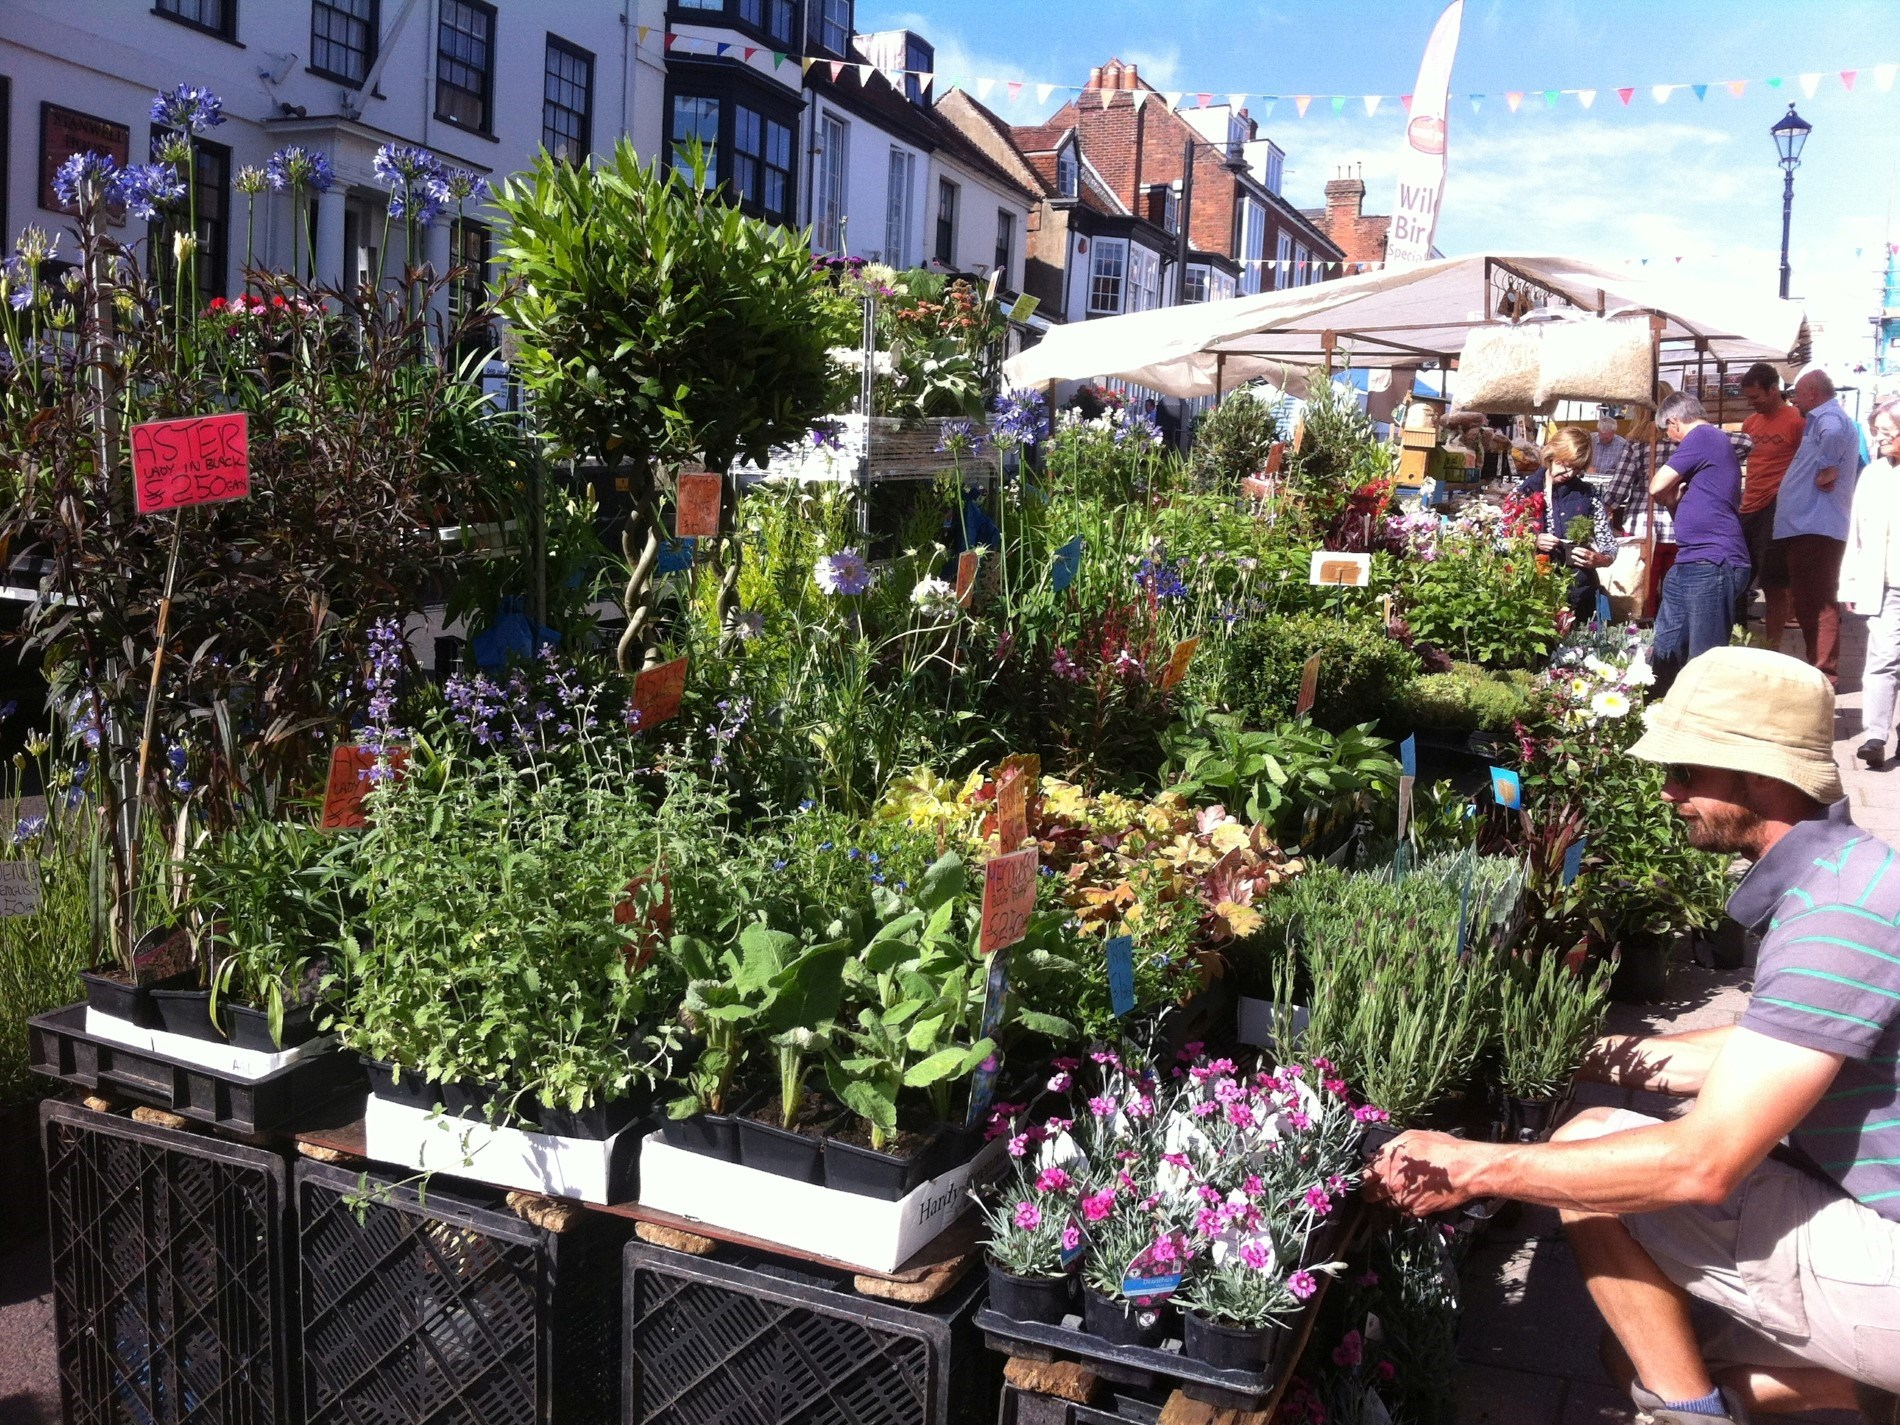 Enjoy a stroll through the Saturday market in the High Street